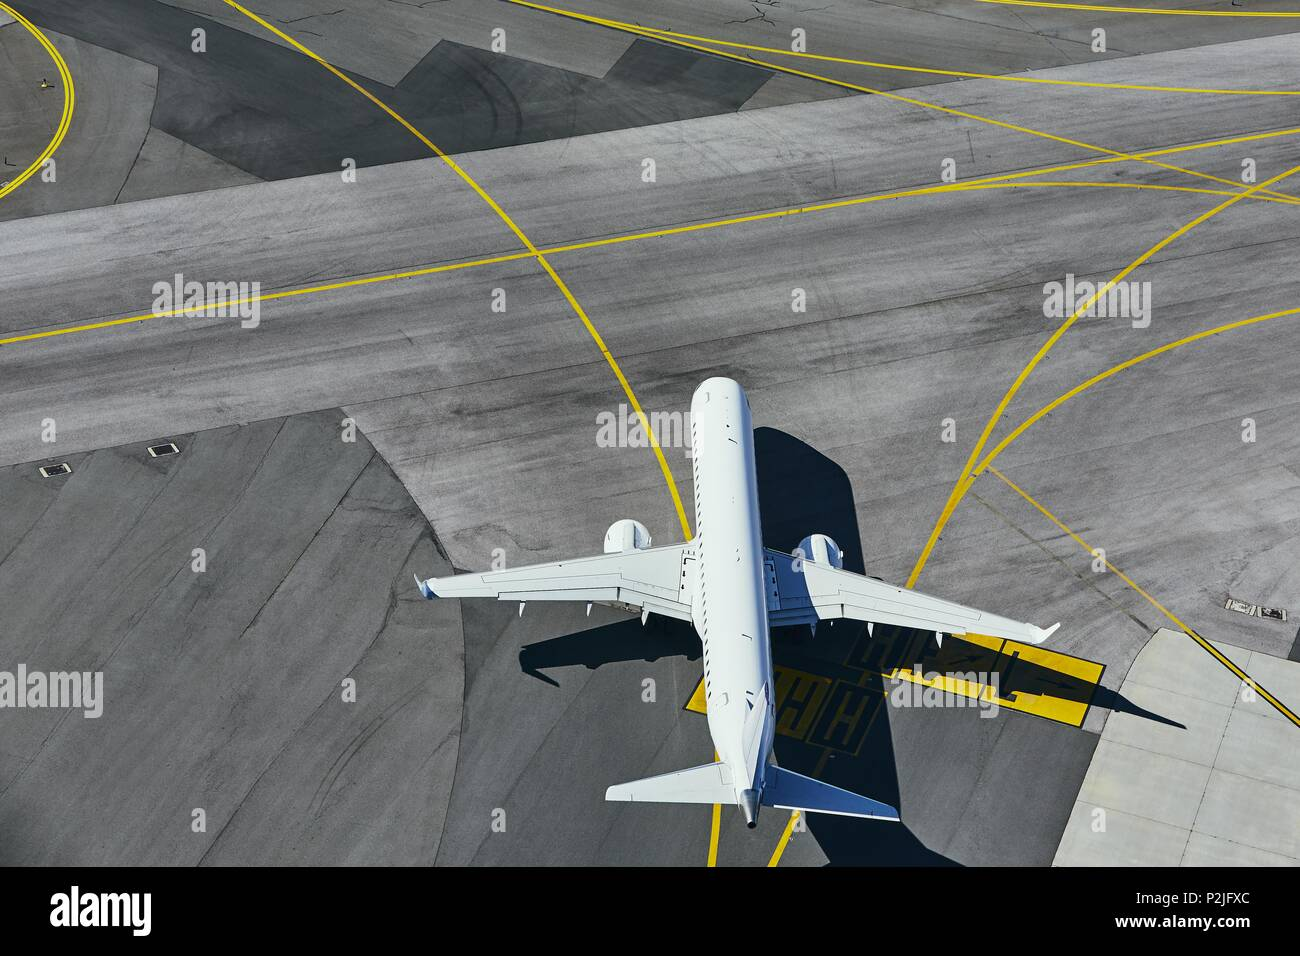 Aerial view of the airport. Airplane taxiing to runway. - Stock Image